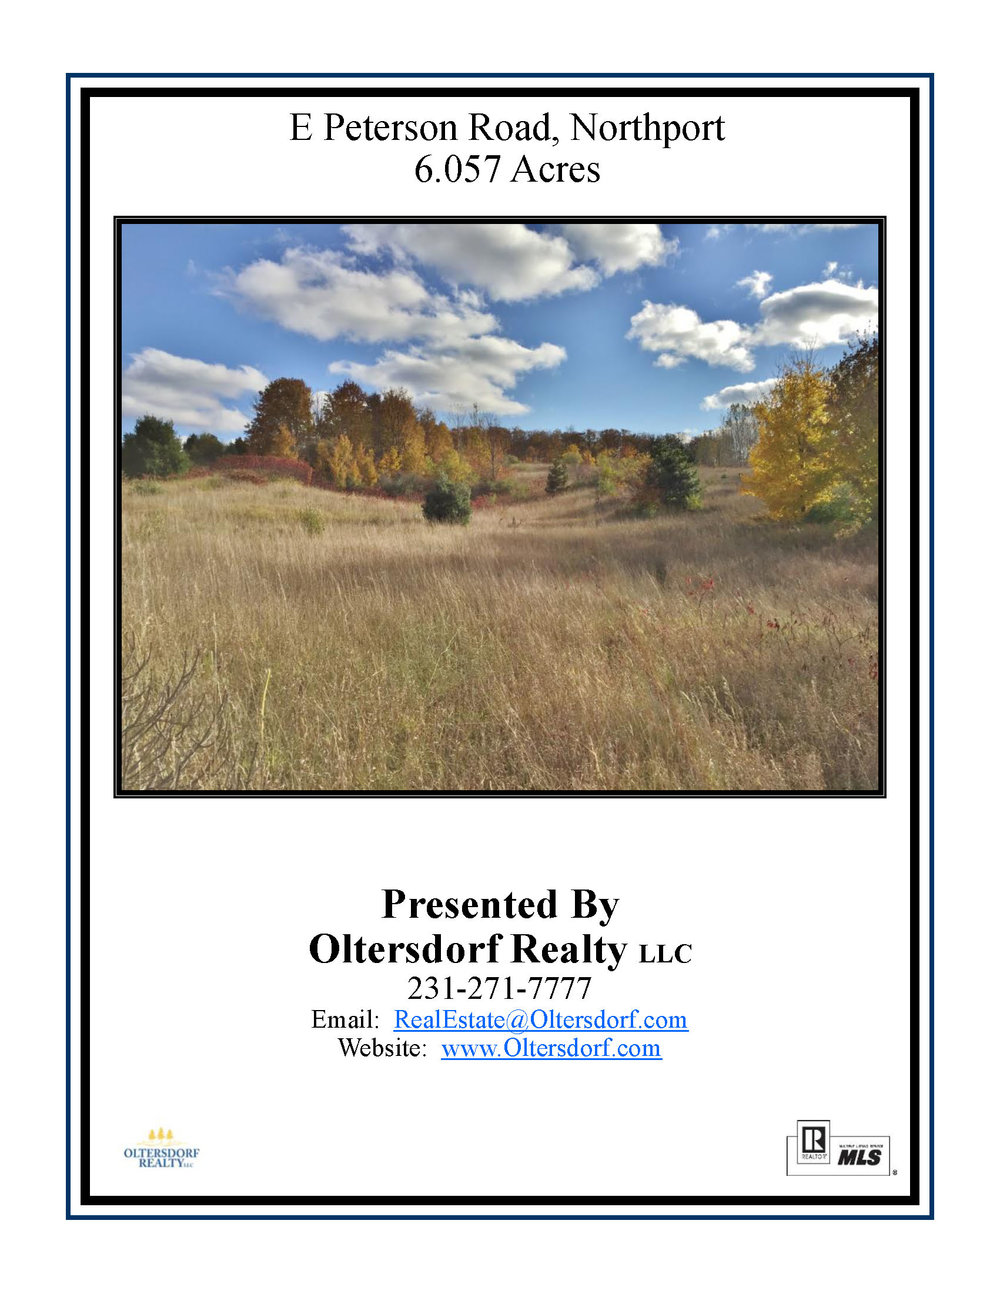 Parcel E – E Peterson Road, Northport, MI – 6.05 Acres & Distant Lake Michigan Views - For Sale by Oltersdorf Realty LLC (1).jpg